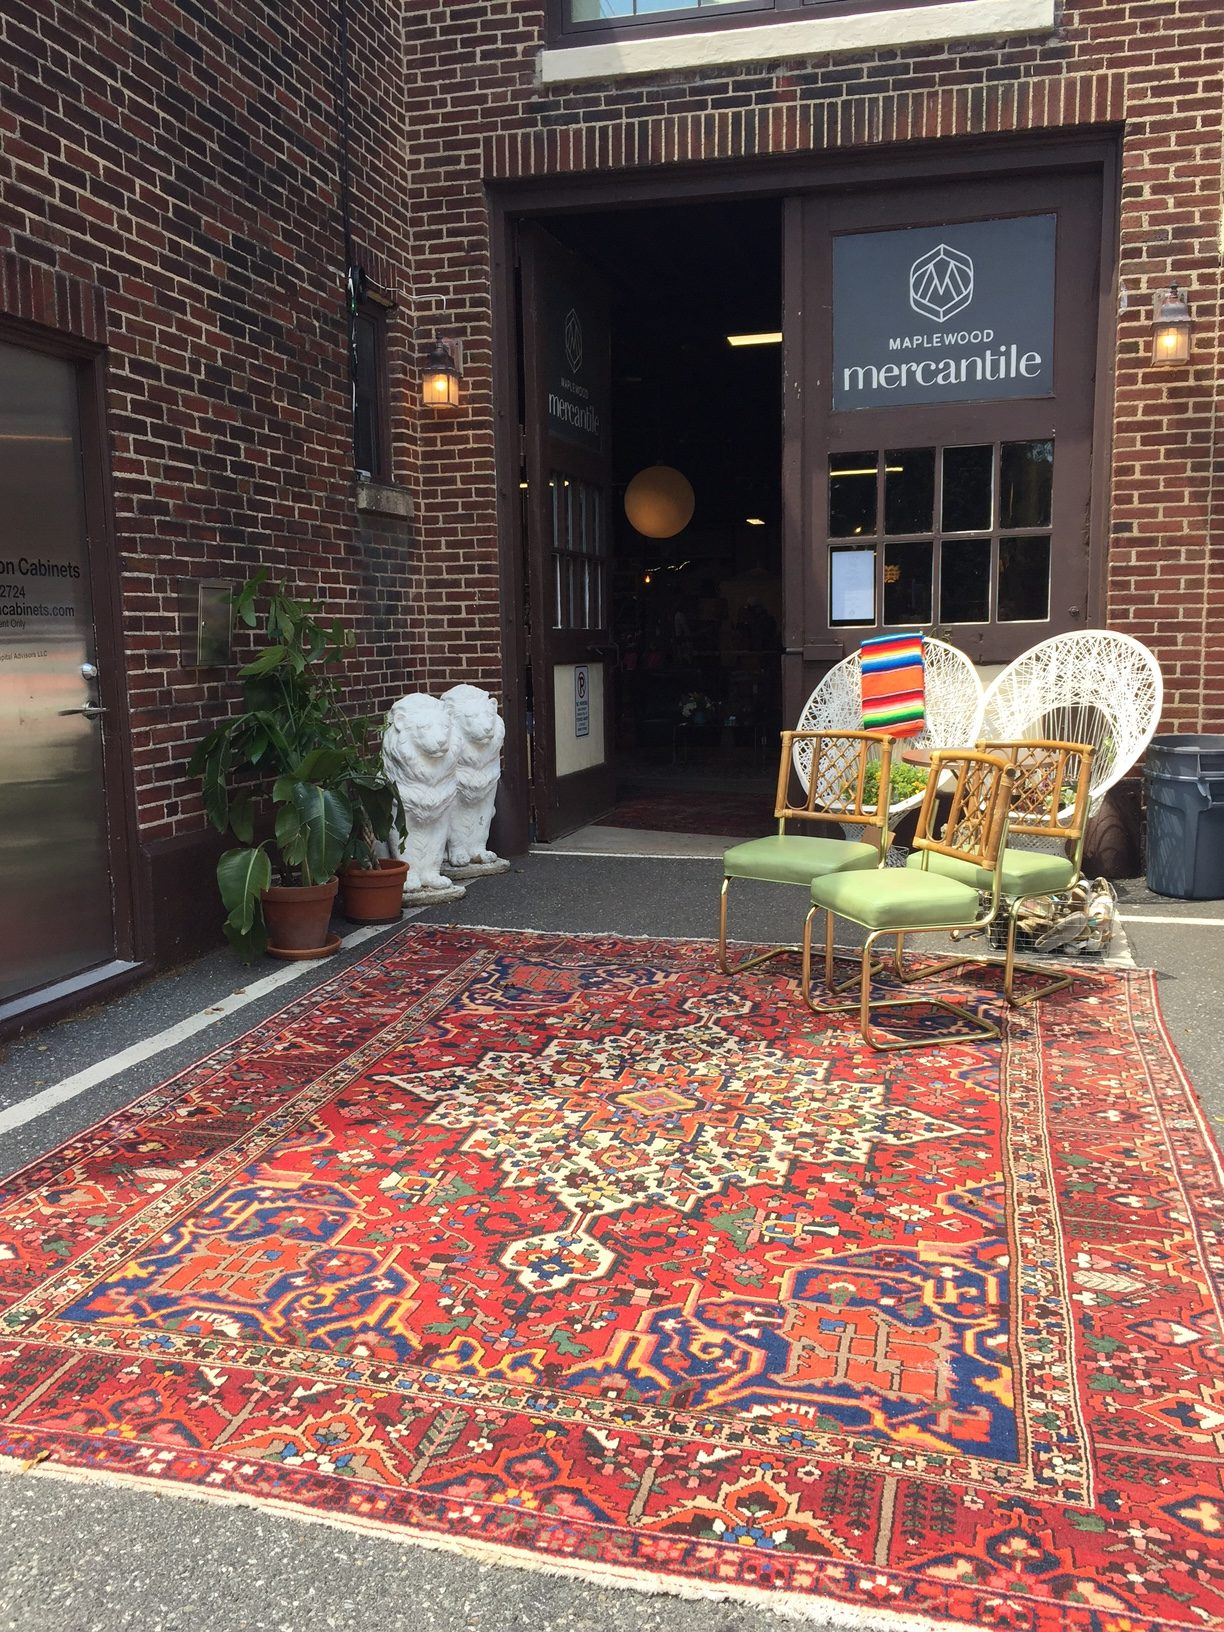 Maplewood Mercantile: Antiques, Clothing, Jewelry, Home Decor All Under One Roof  Amy Hughes / The Village Green NJ